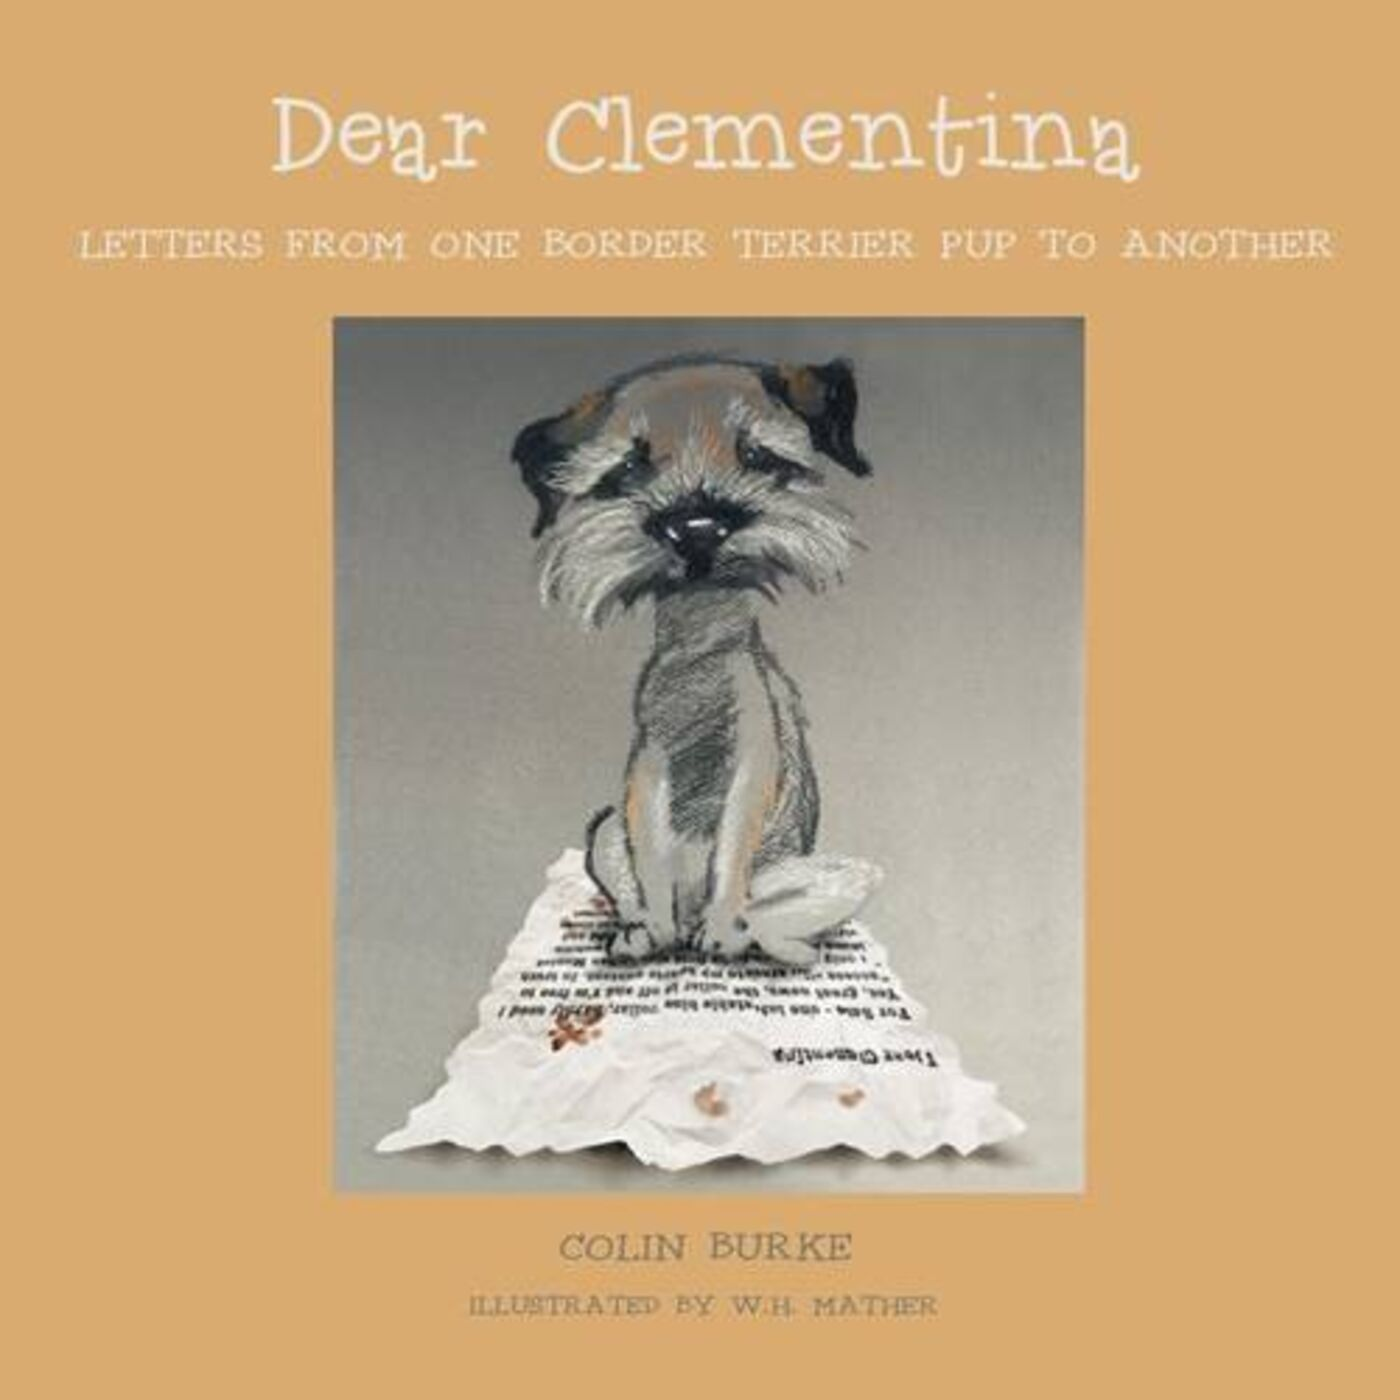 """Dear Clementina Chapter 2 - """"Training for Beginners"""""""